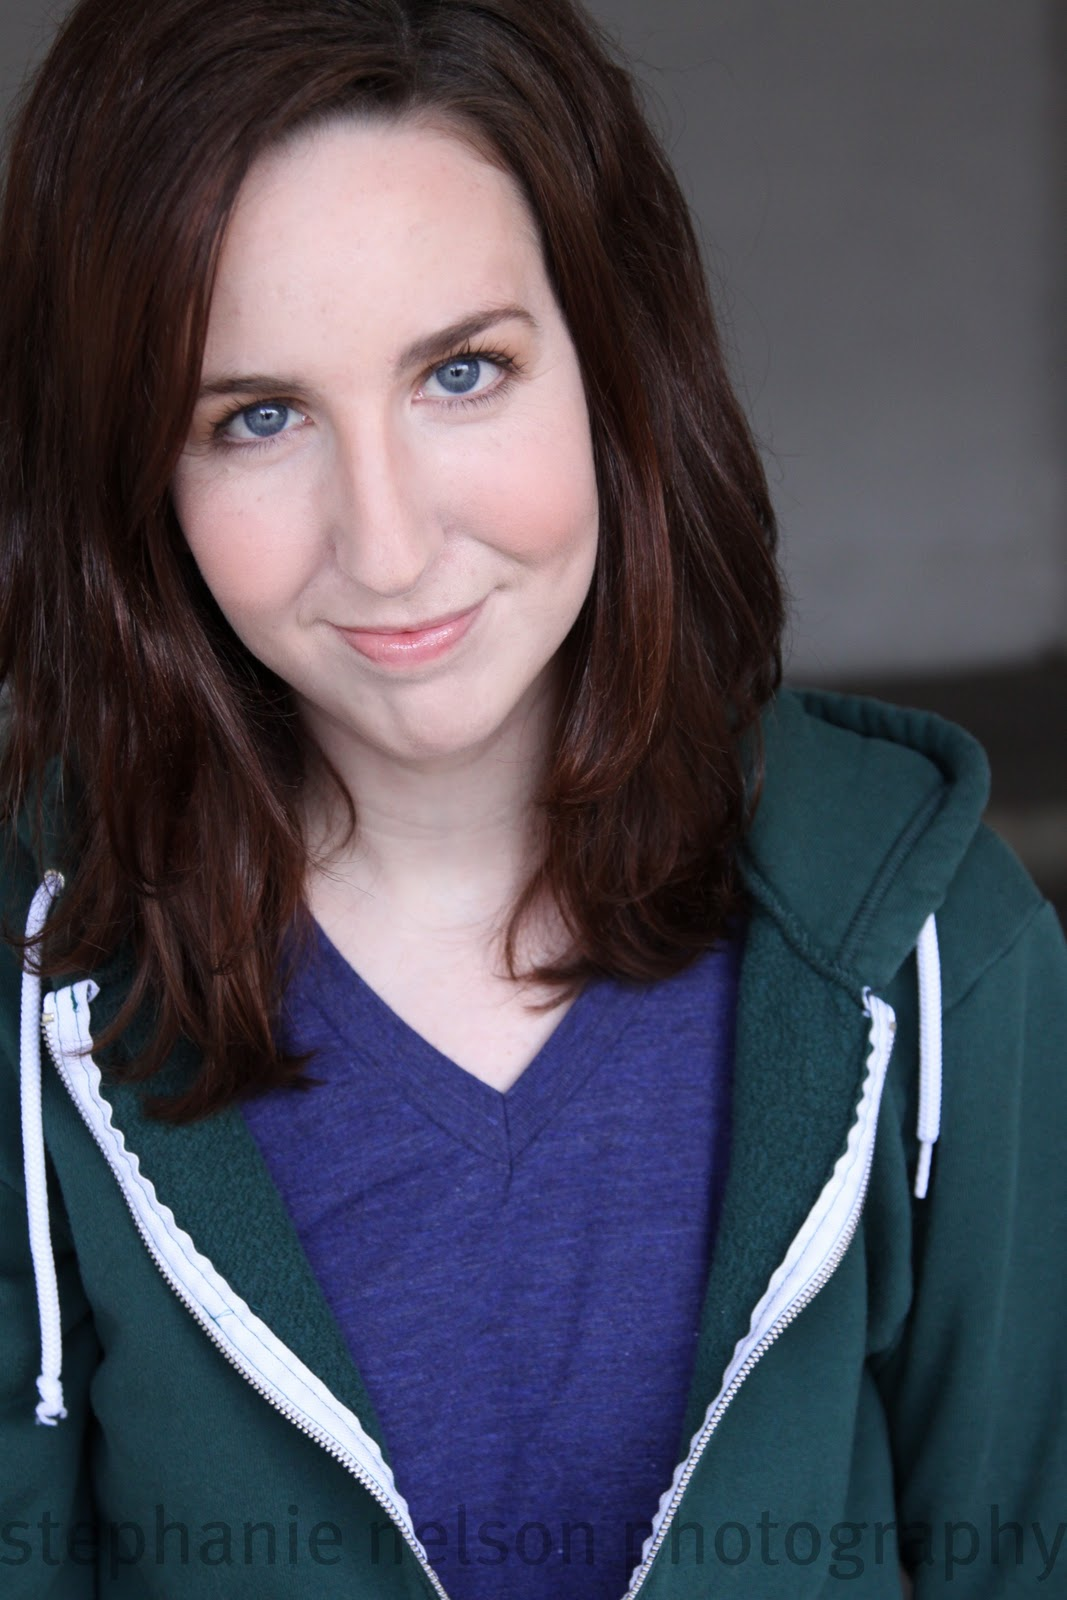 stephanie courtney no makeup